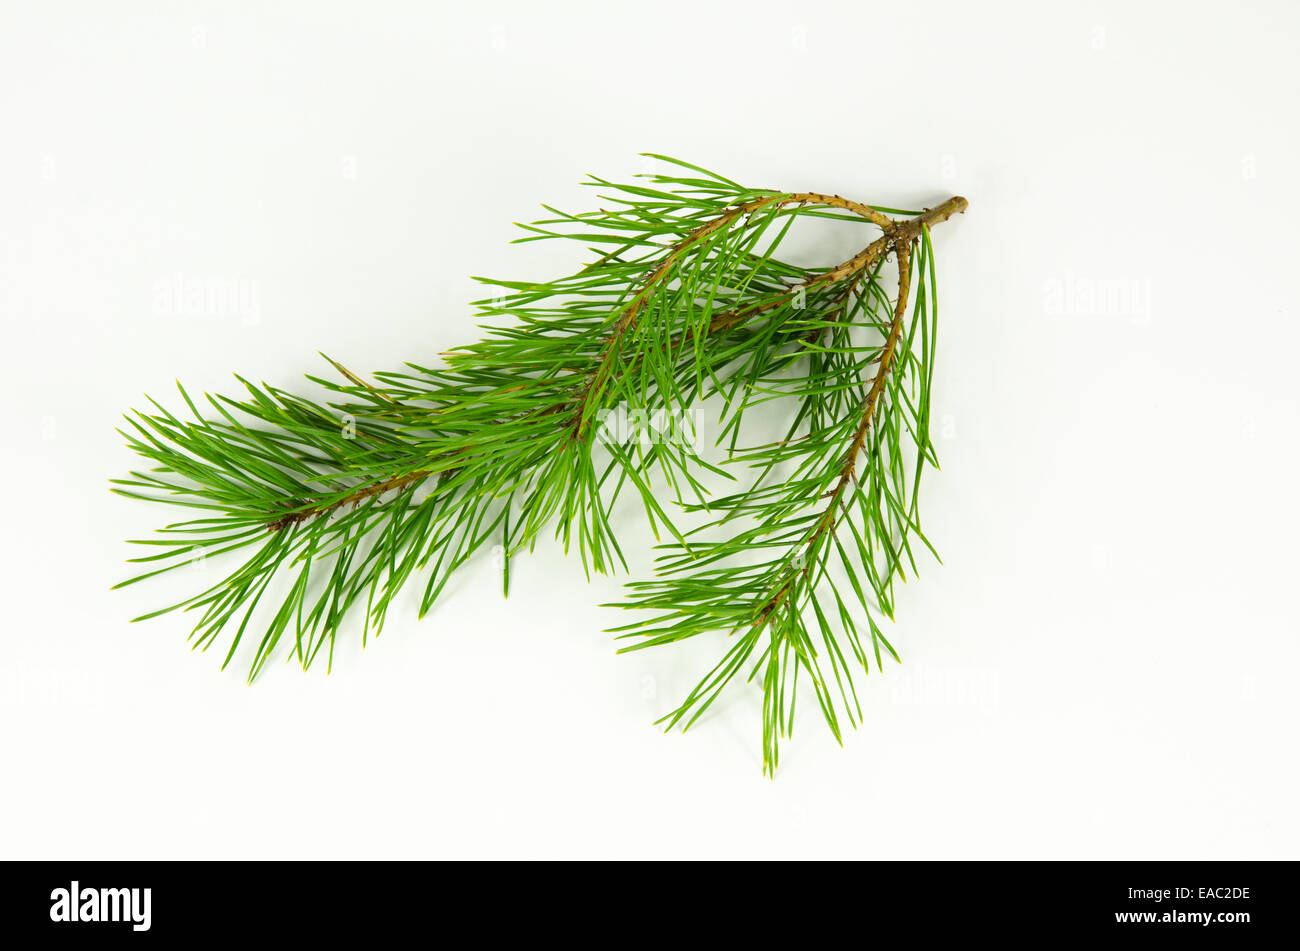 One pine tree twig at a white background - Stock Image